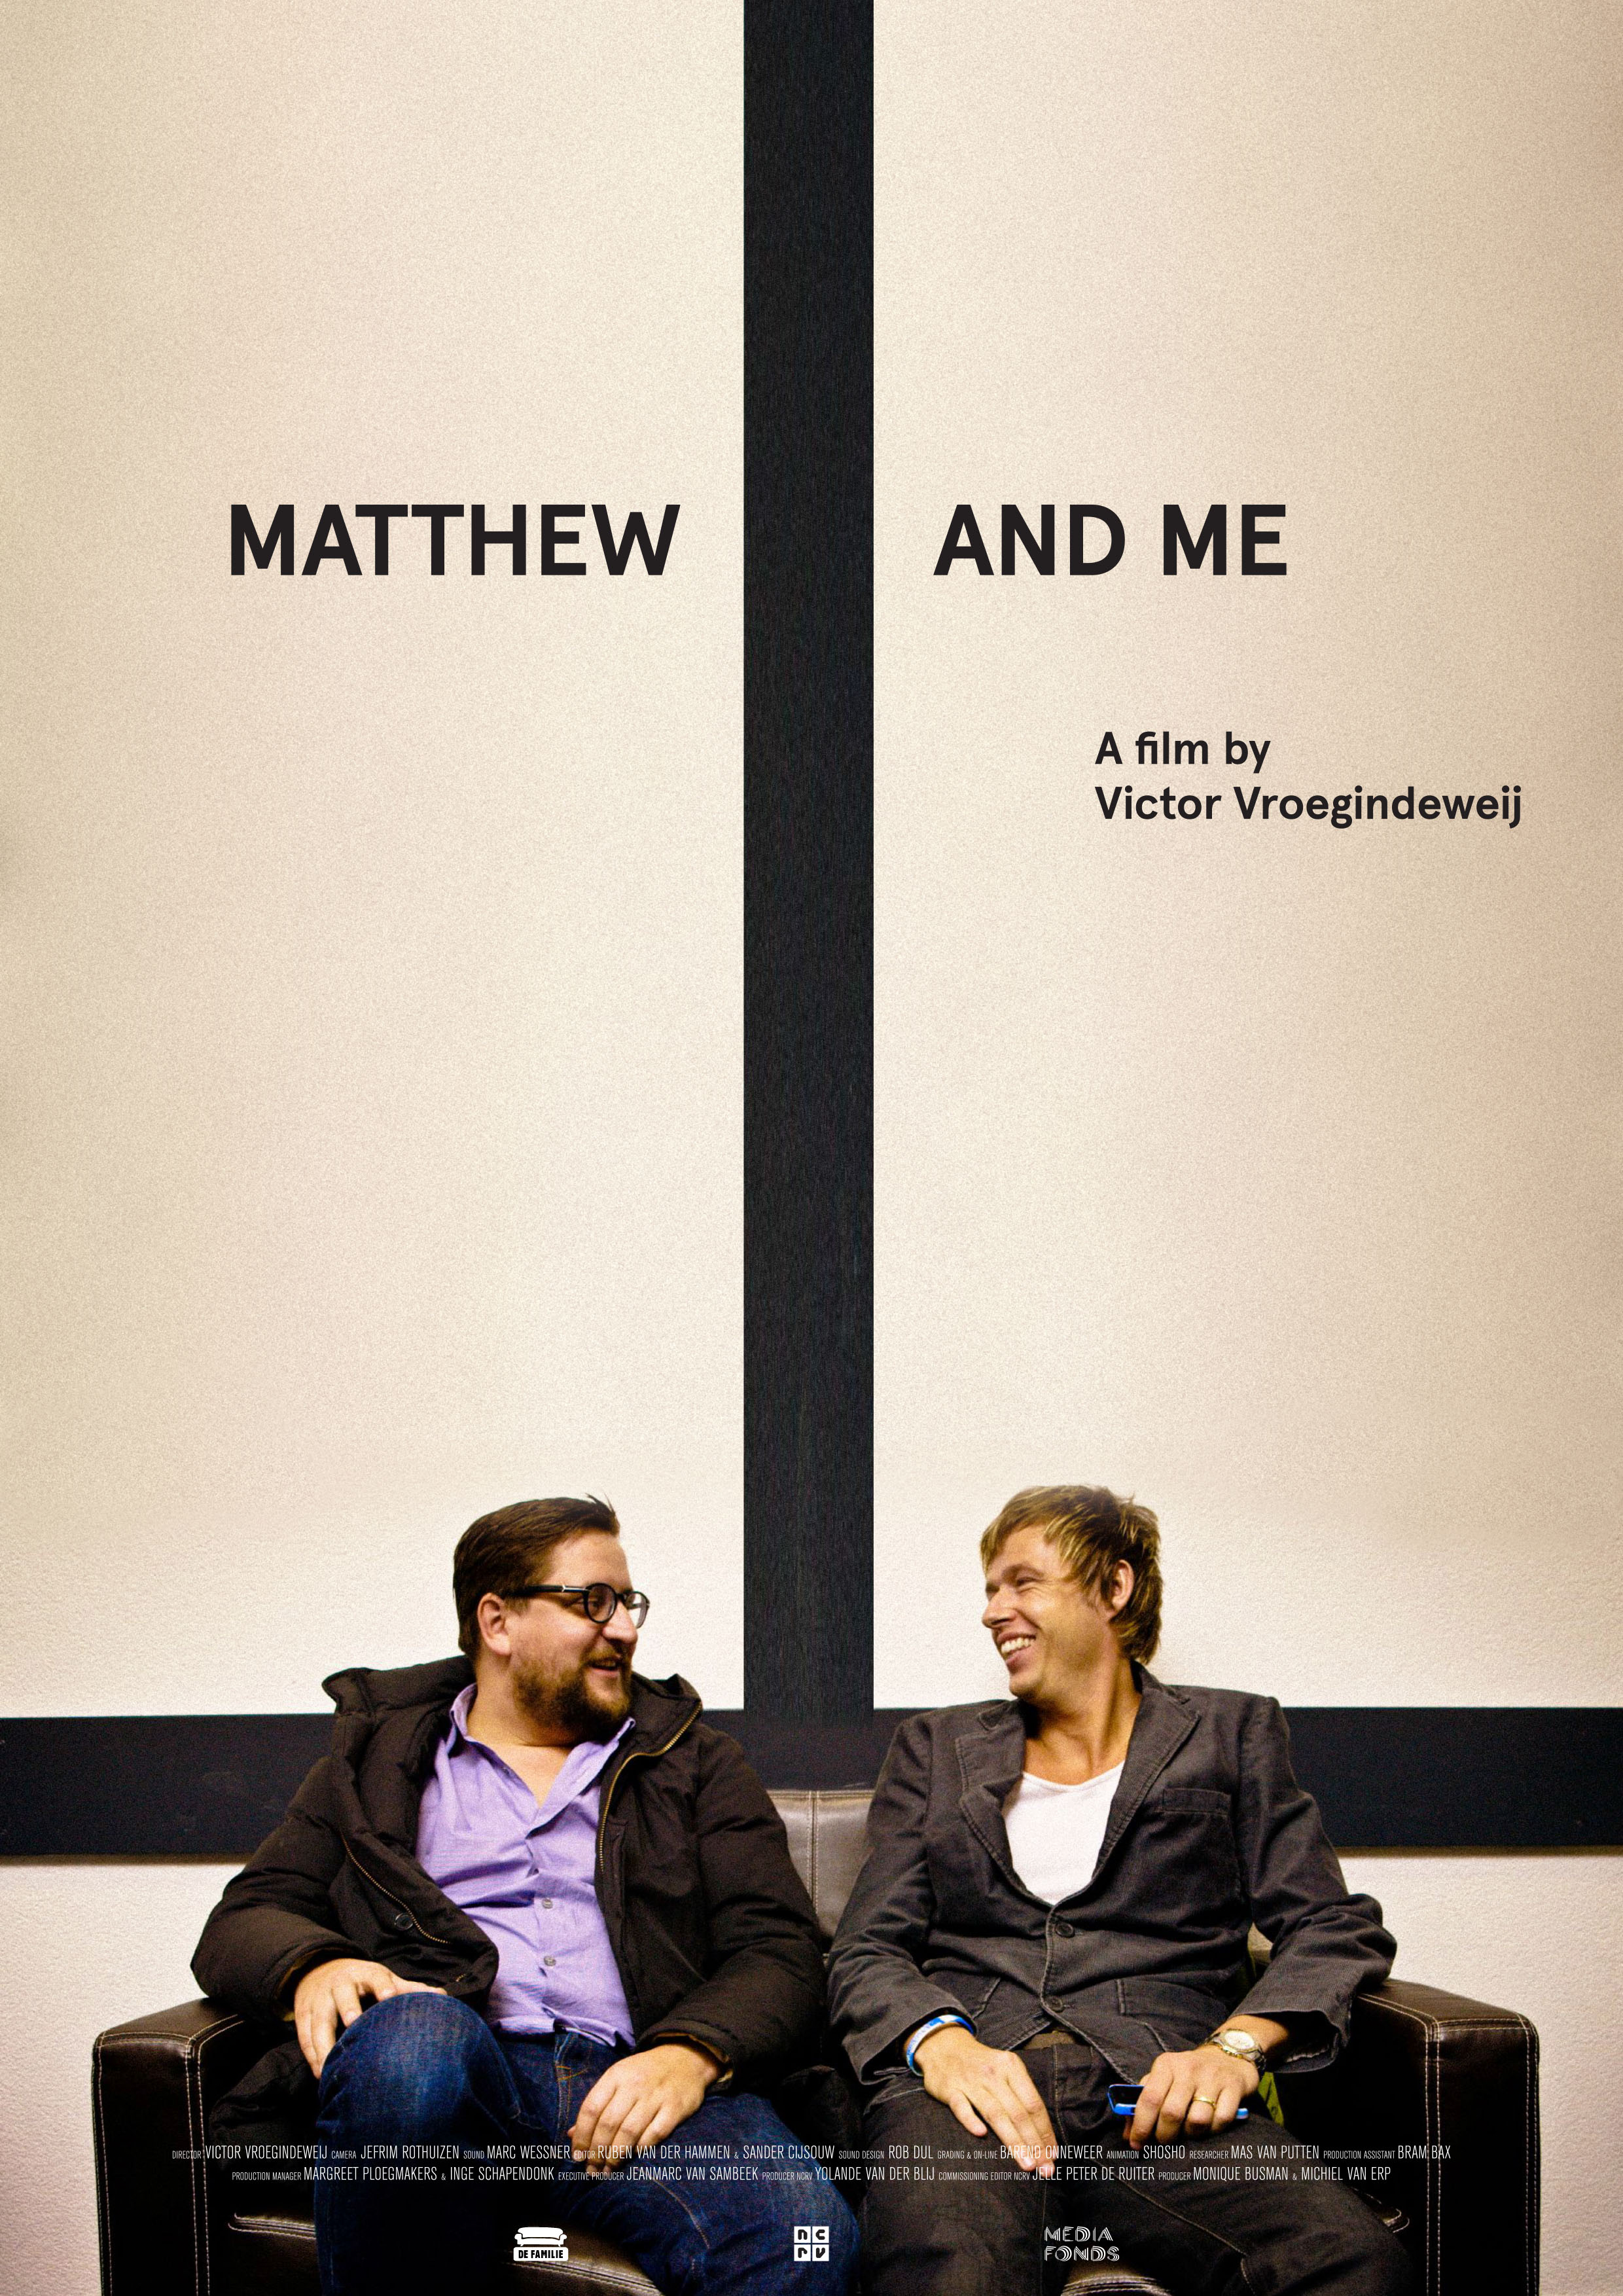 Matthew and me - A couple of years back I was fascinated with pentecostalism,which I consider the future of the Christian faith. So I made this doc about Mattheus, a leader in this world. By the way, I'm a nihilist. I believe in noooothing.